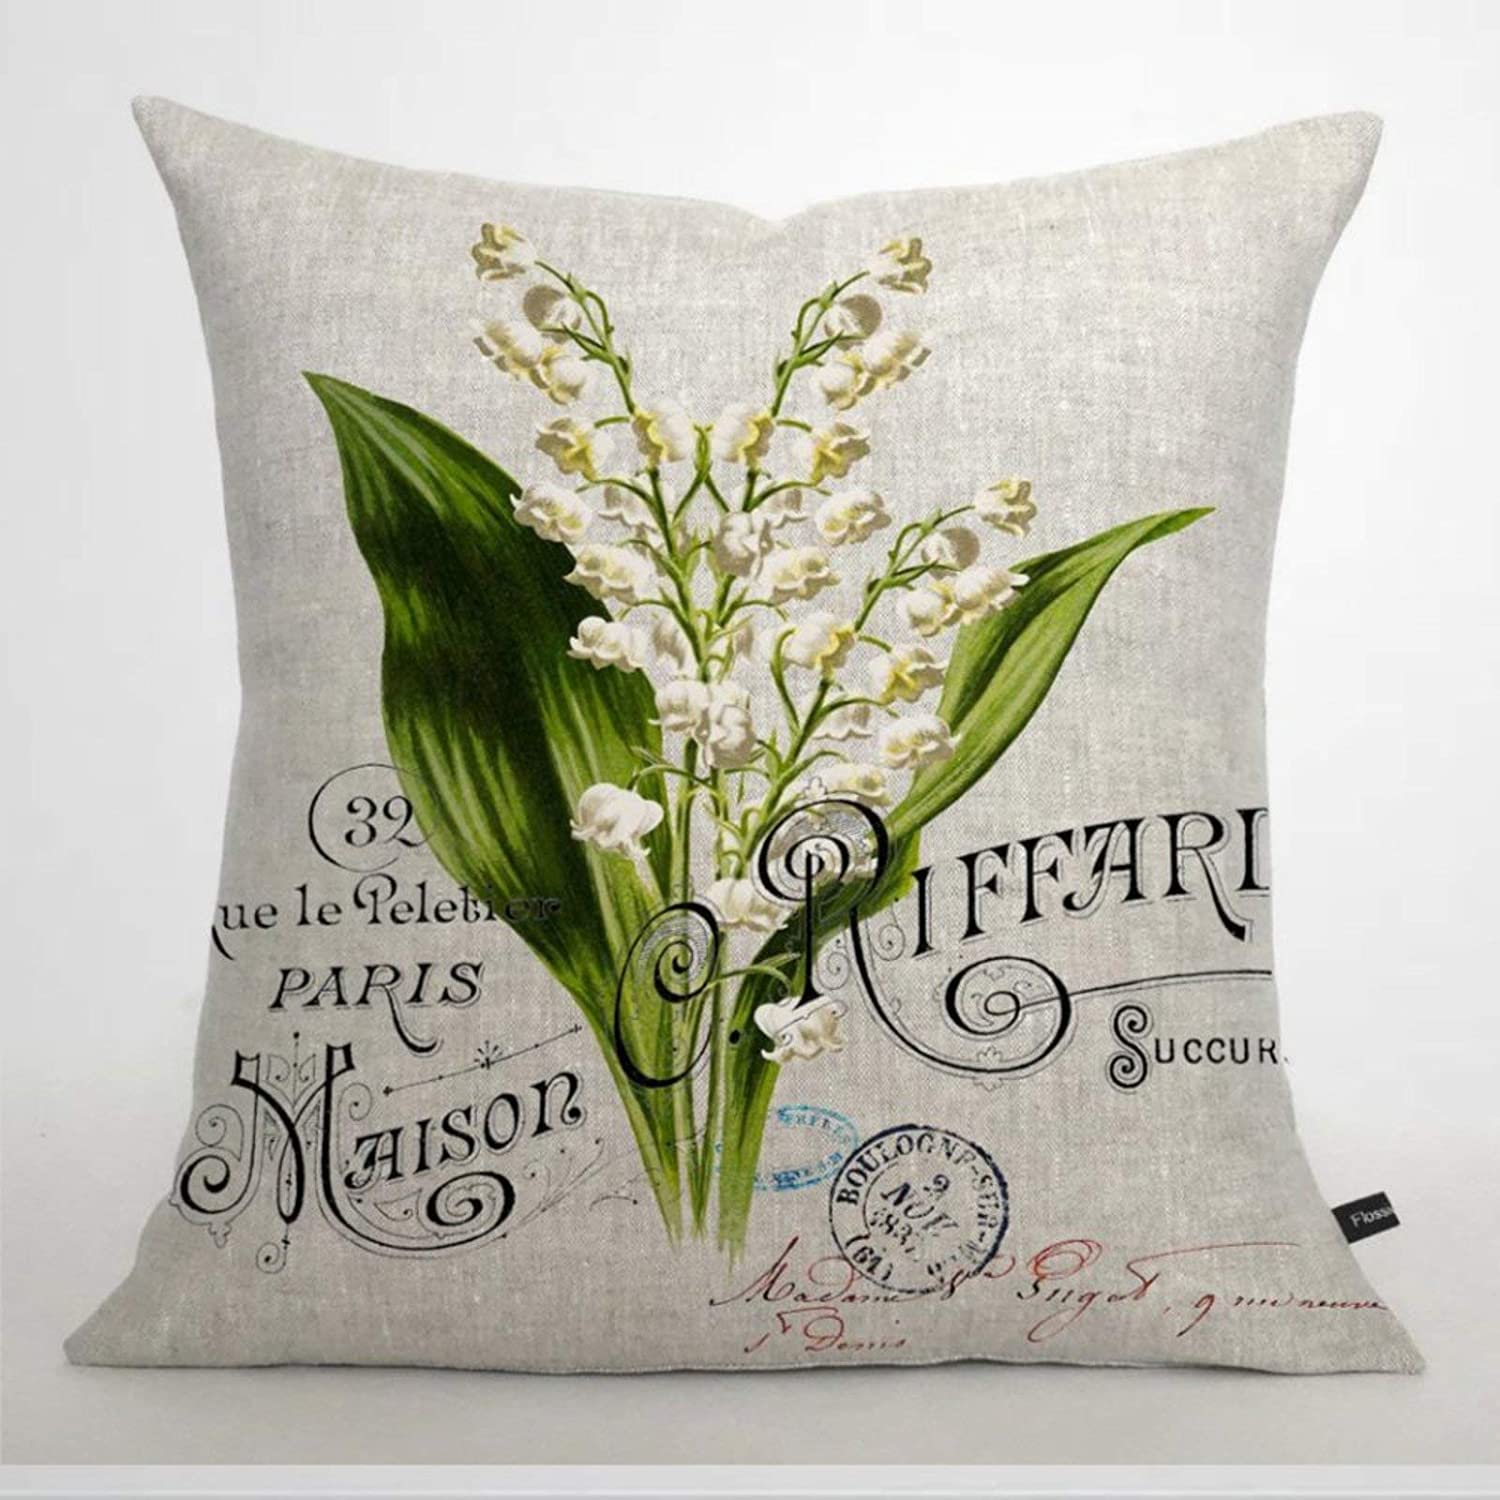 BYRON HOYLE French Lily of Valley Cushion Cover,Throw Pillow Cover,Rustic Linen Decorative Lumbar Pillowcase for Chair Room Sofa car,Home Decor,Housewarming 18x18 Inch